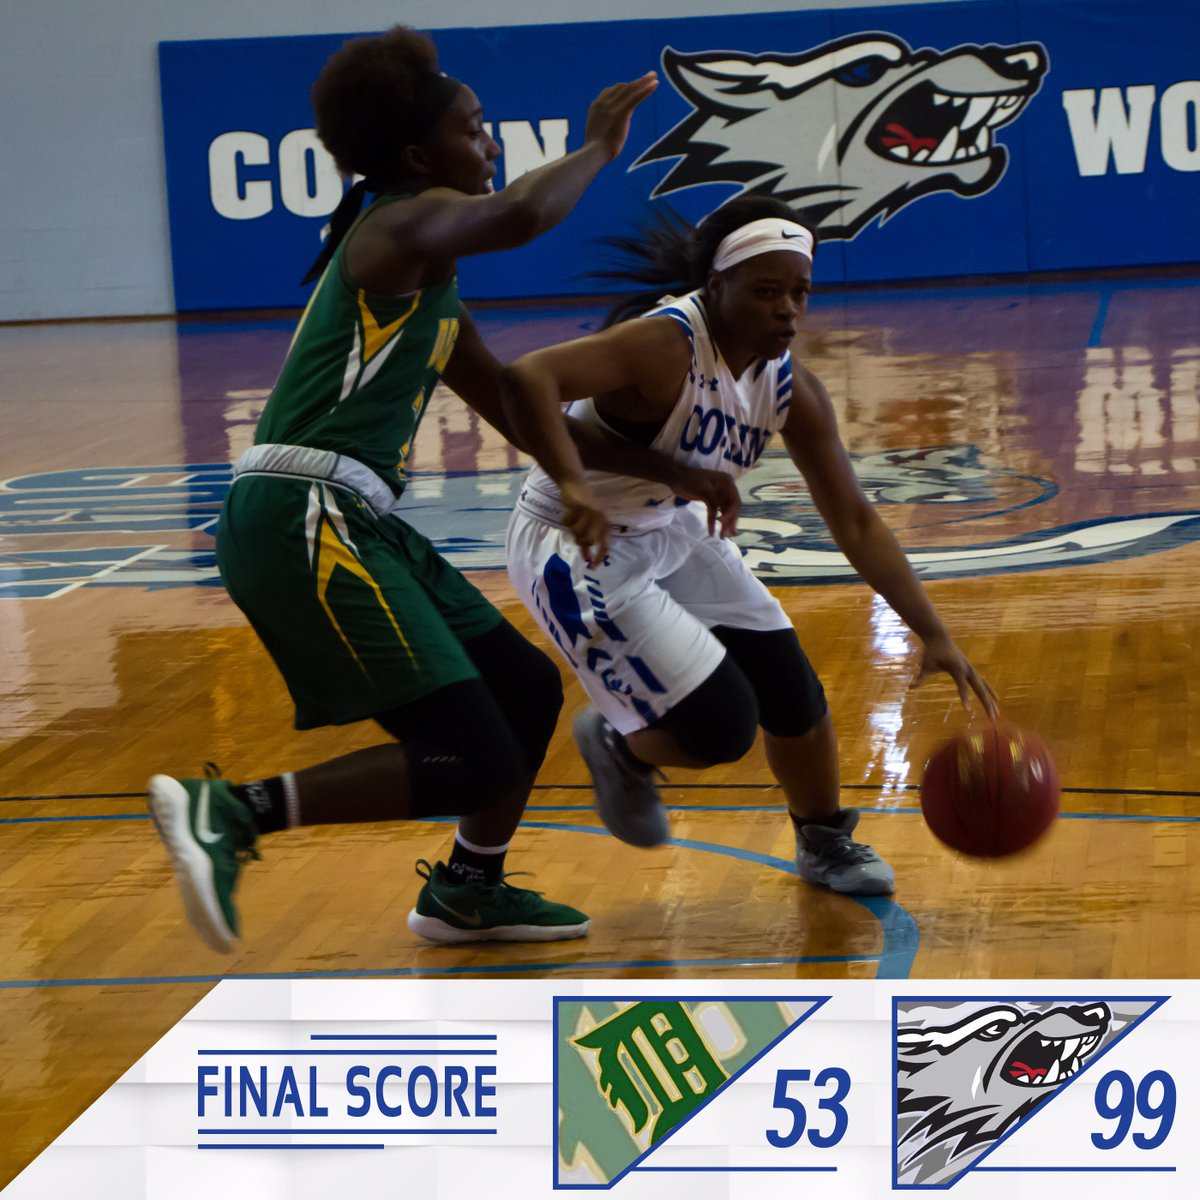 FINAL | Lady Wolves roll by Delgado 99-53! The win moves the Lady Wolves to 9-1 on the year! #BackThePack